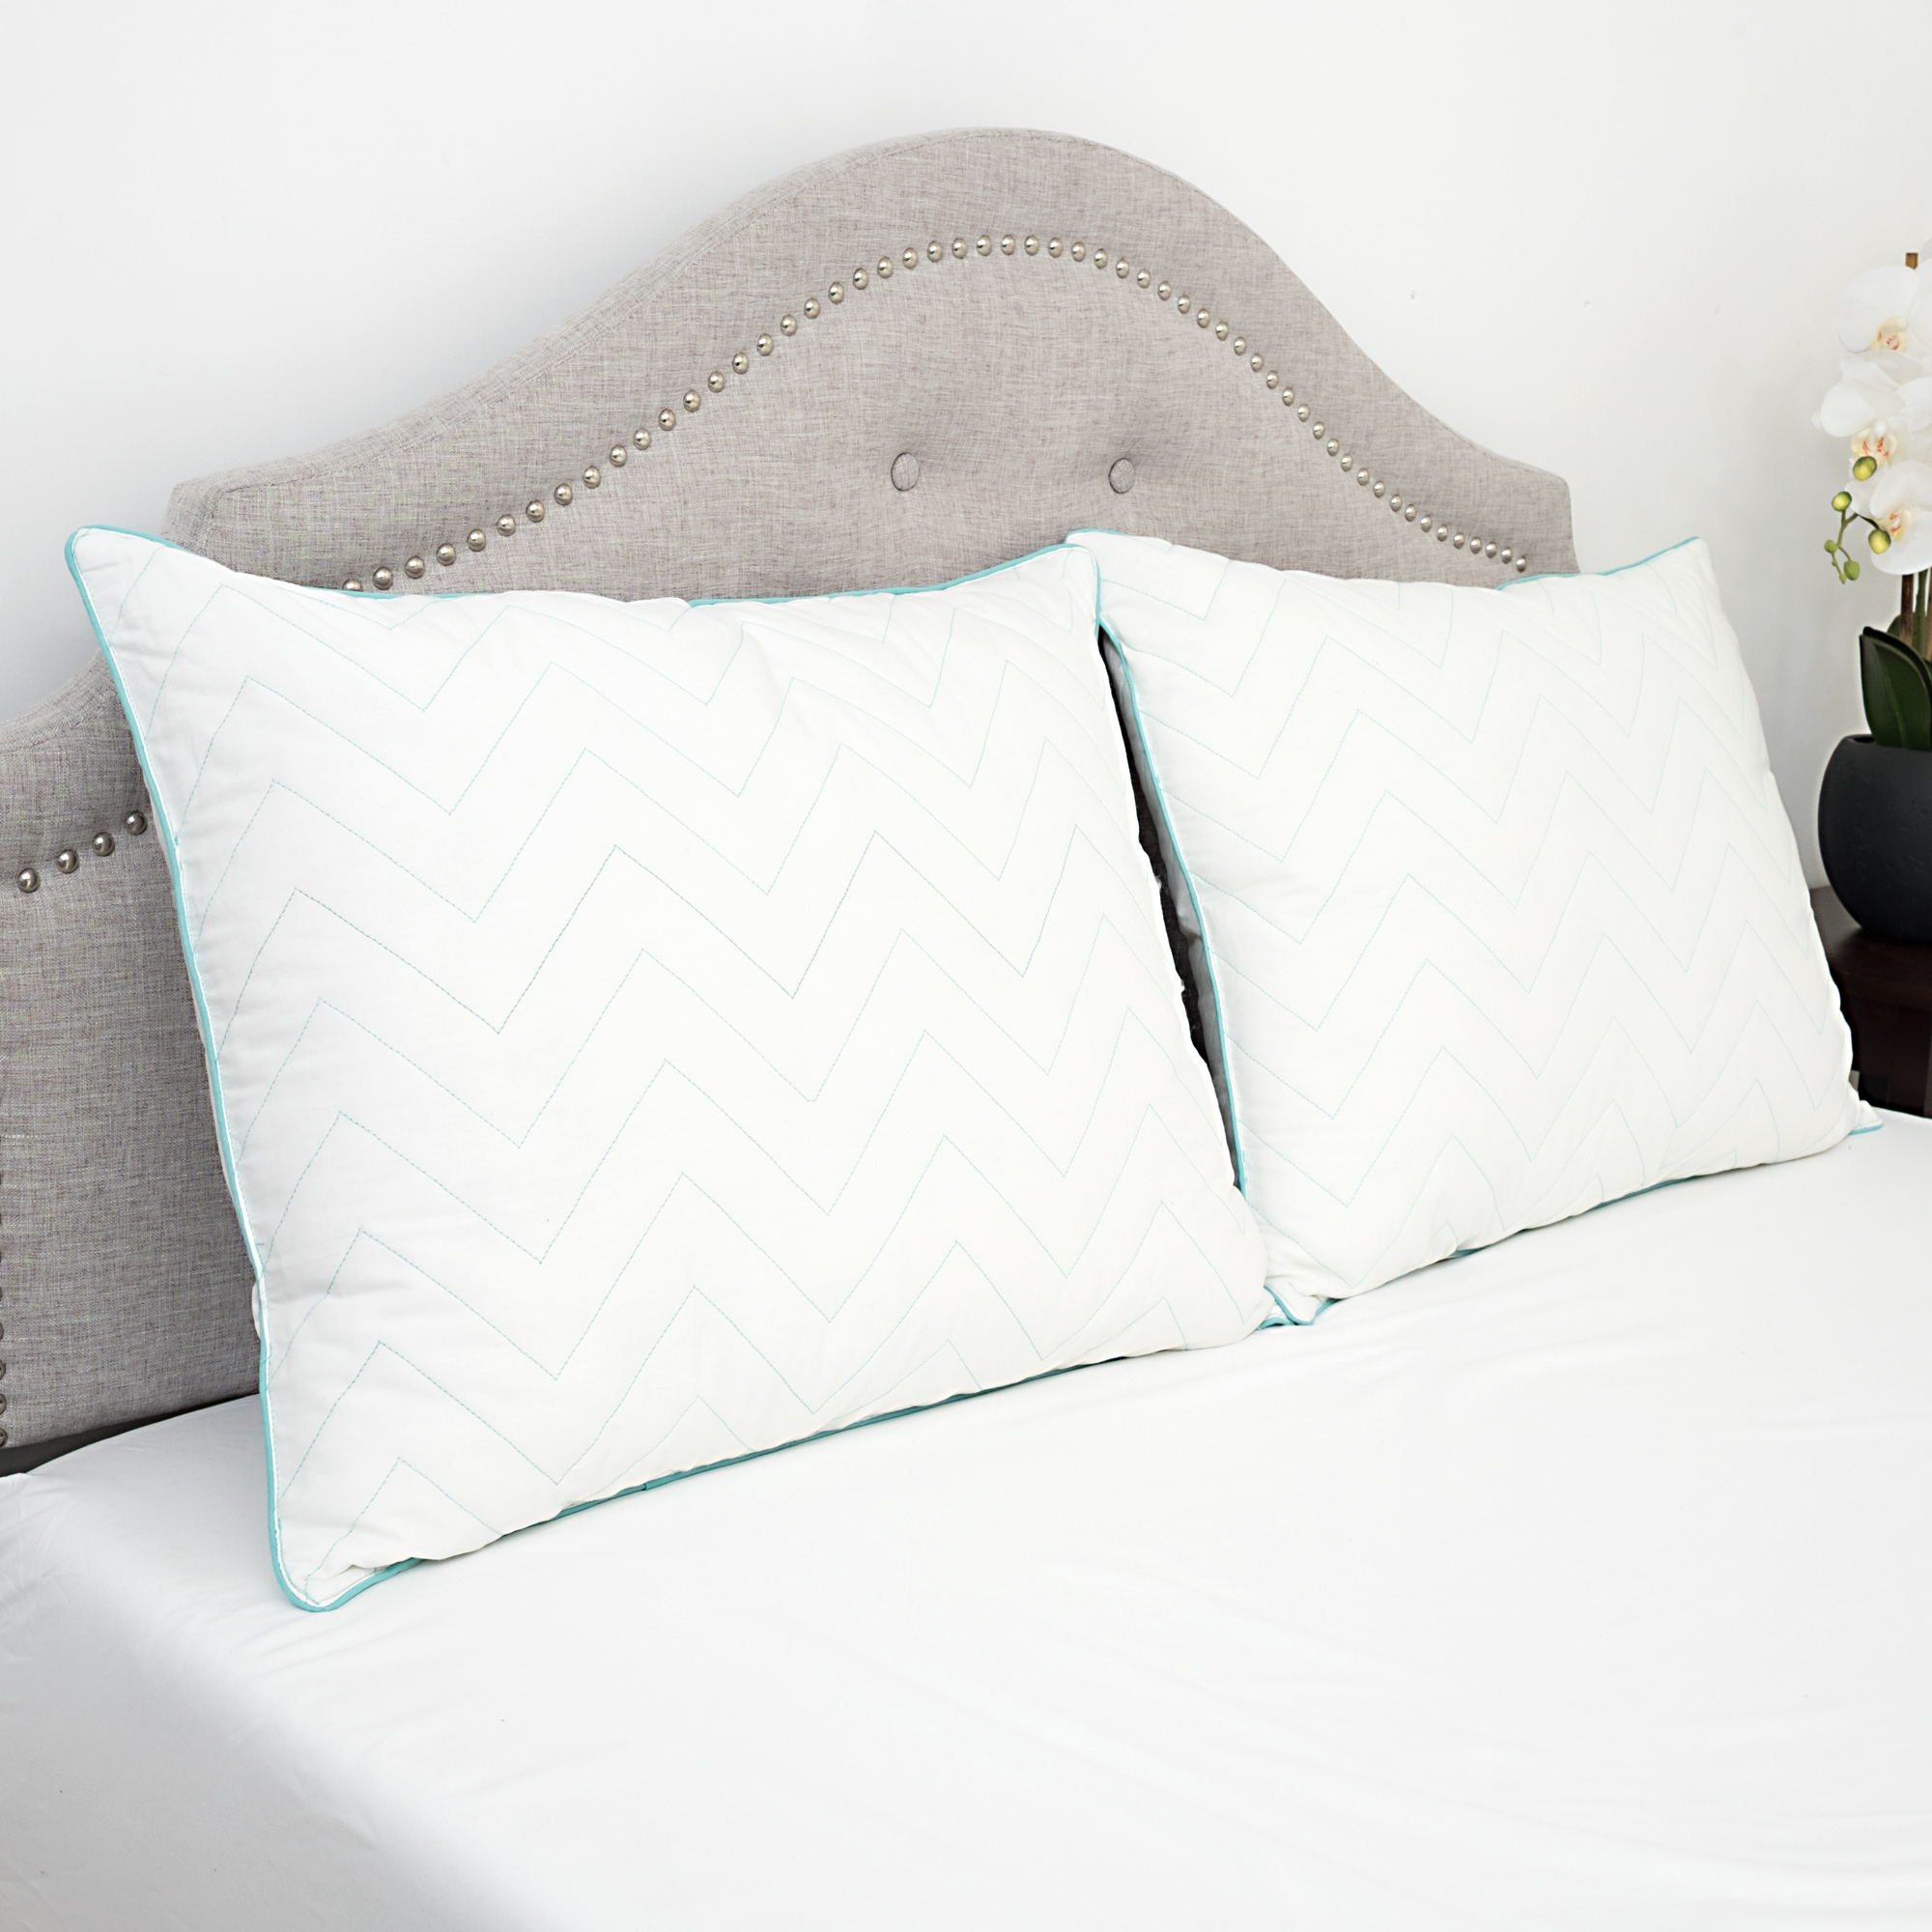 Standard Bed Pillows Details About Cotton Stay Cool Gel Microfiber Bed Pillow Standard Queen King 1 Or 2 Pack